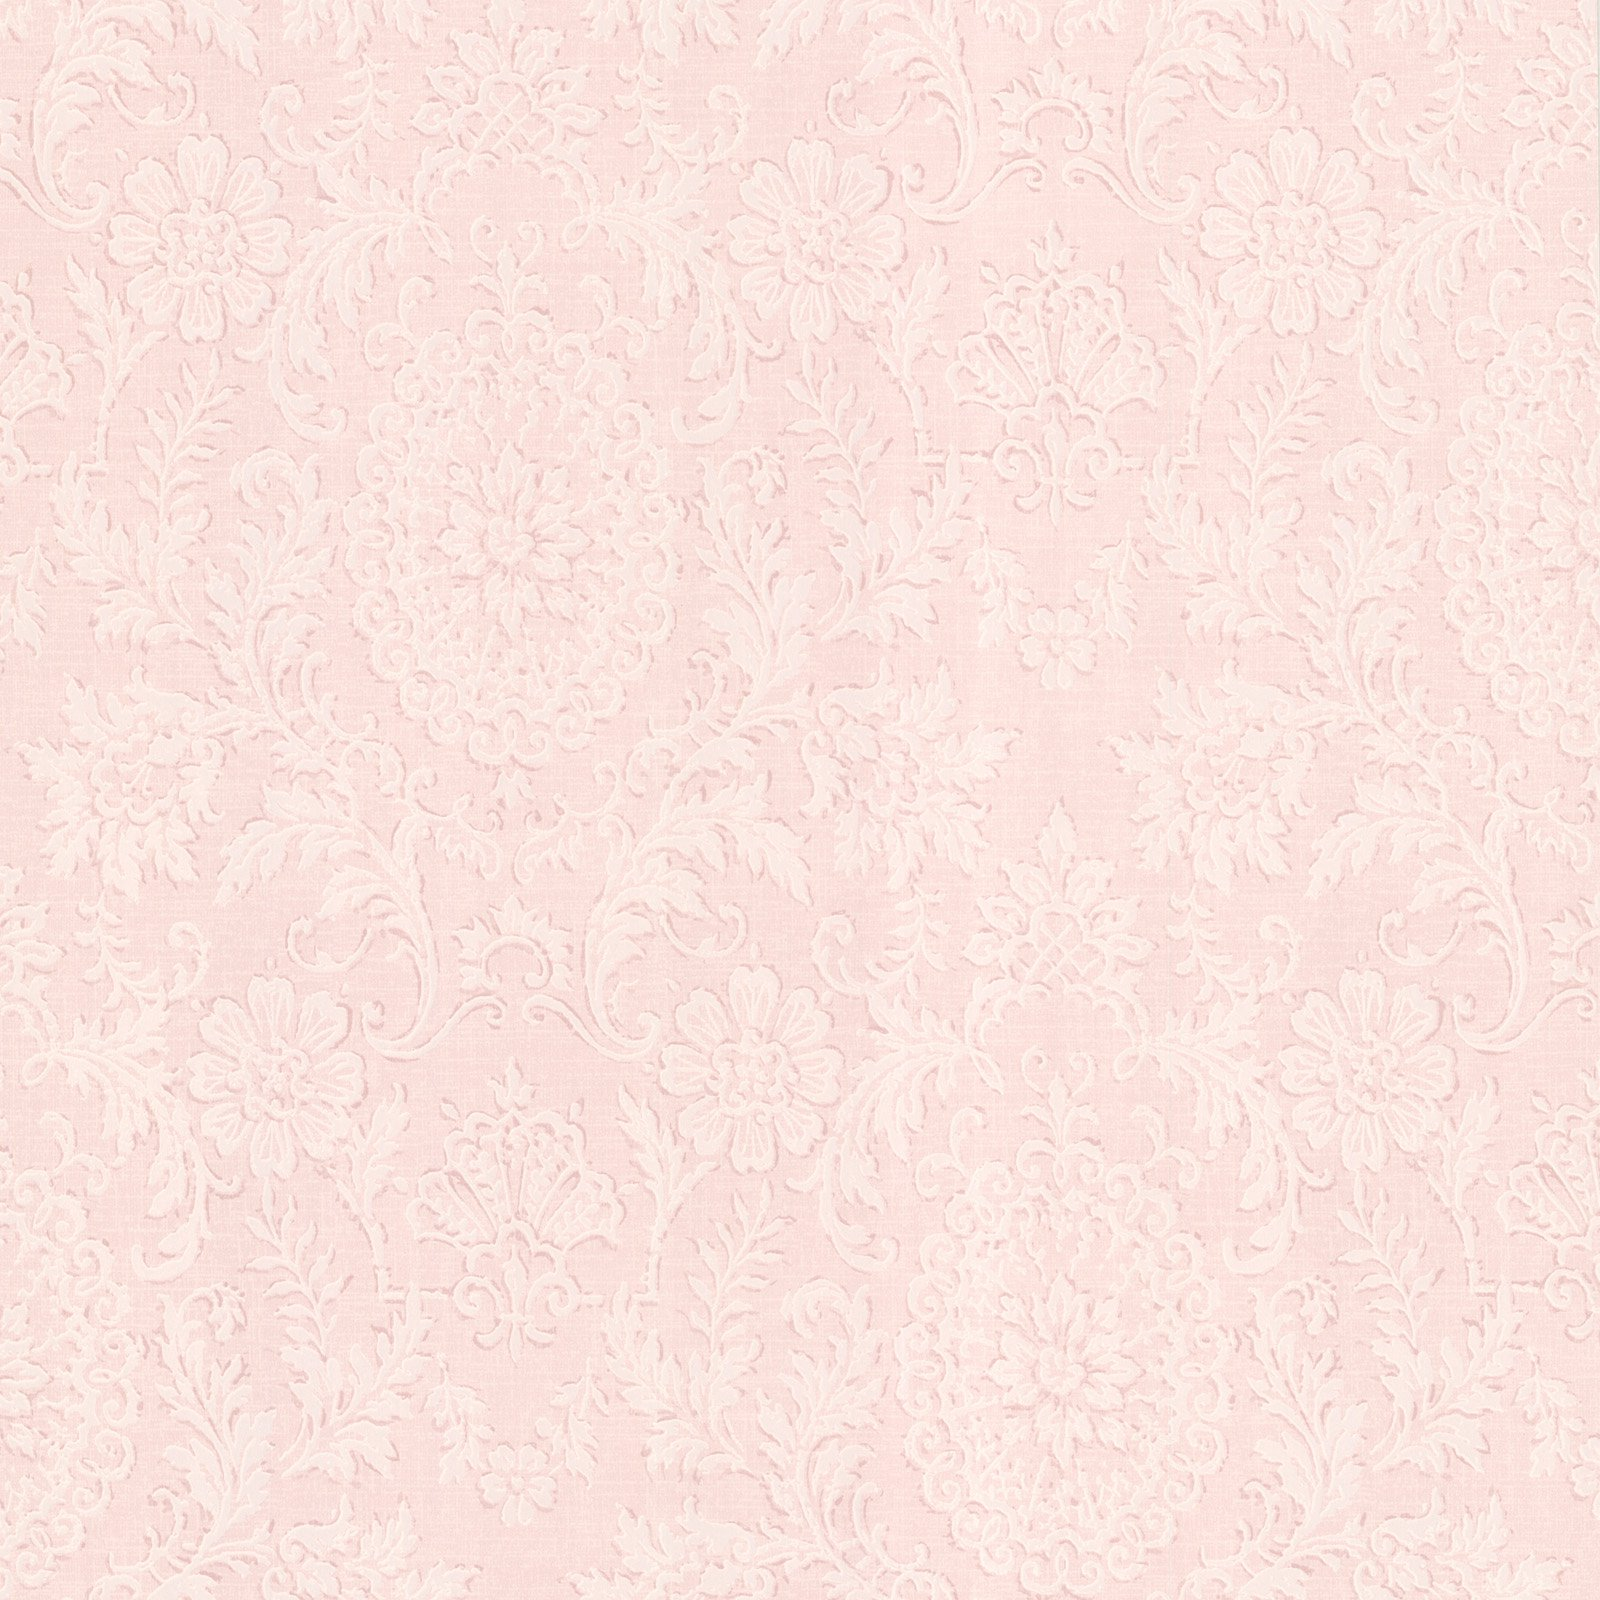 Brewster Beacon House 302-66885 Ornament Damask Motif Wallpaper, Blush